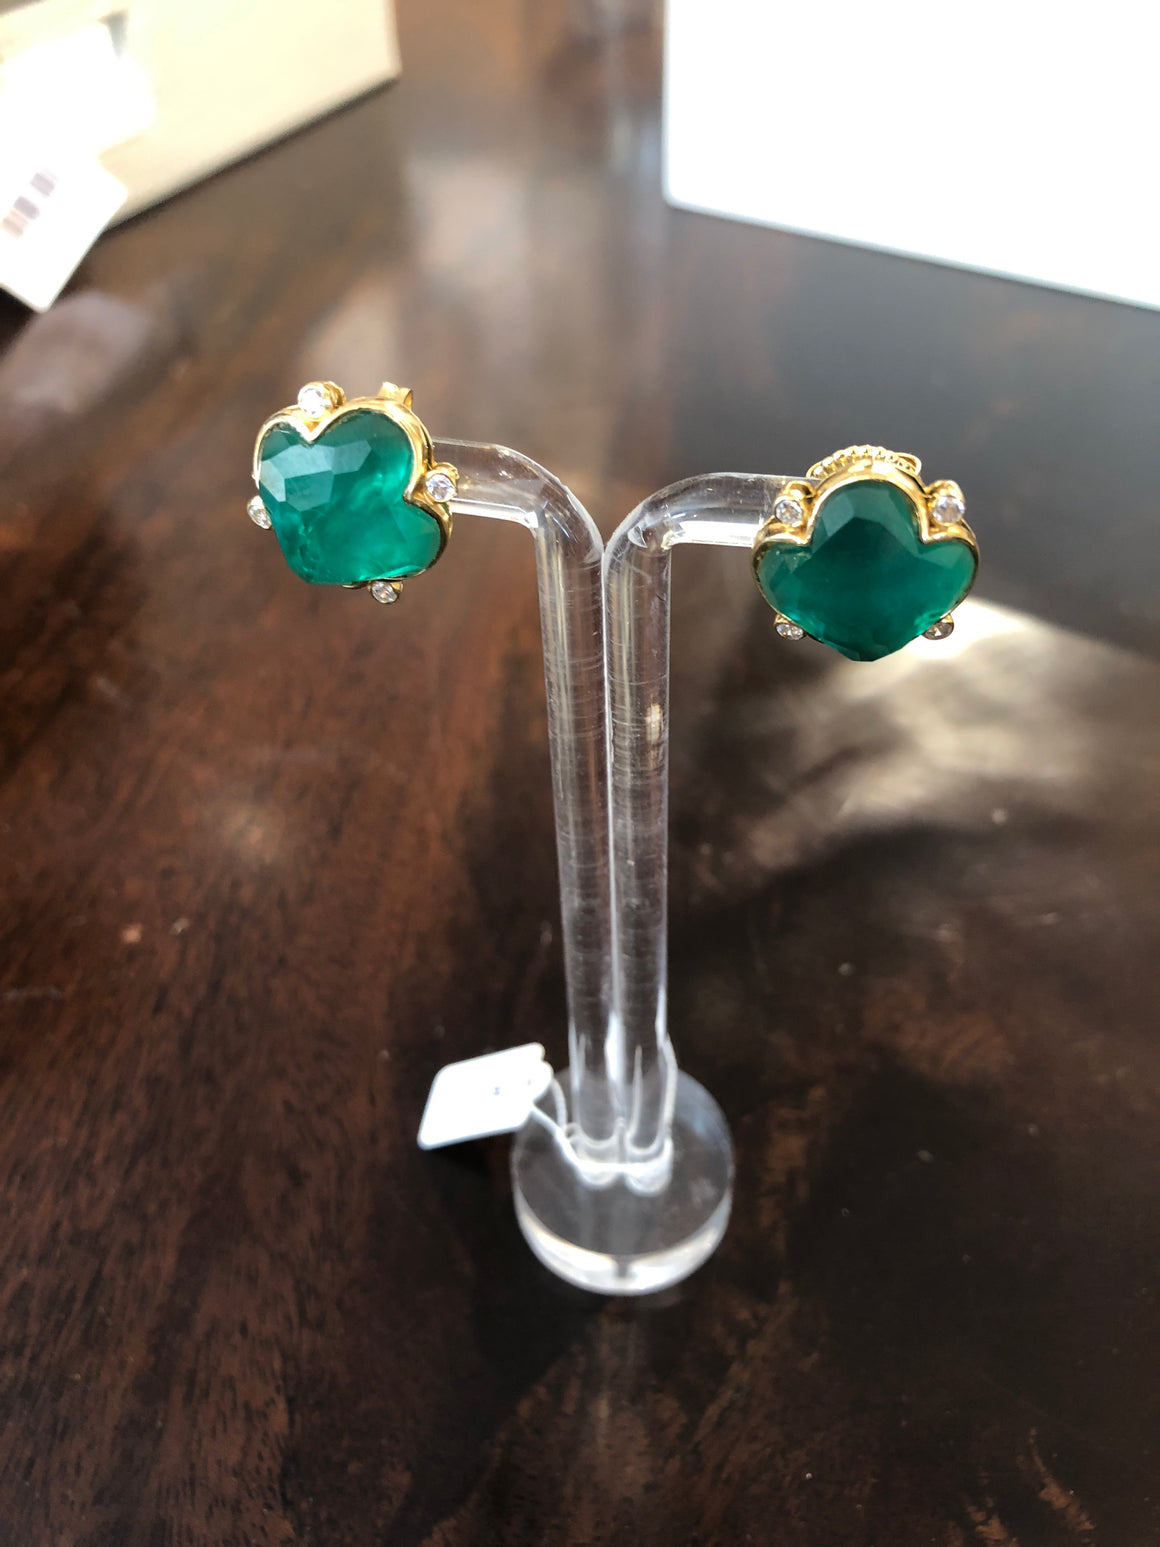 Clover earrings in green and gold